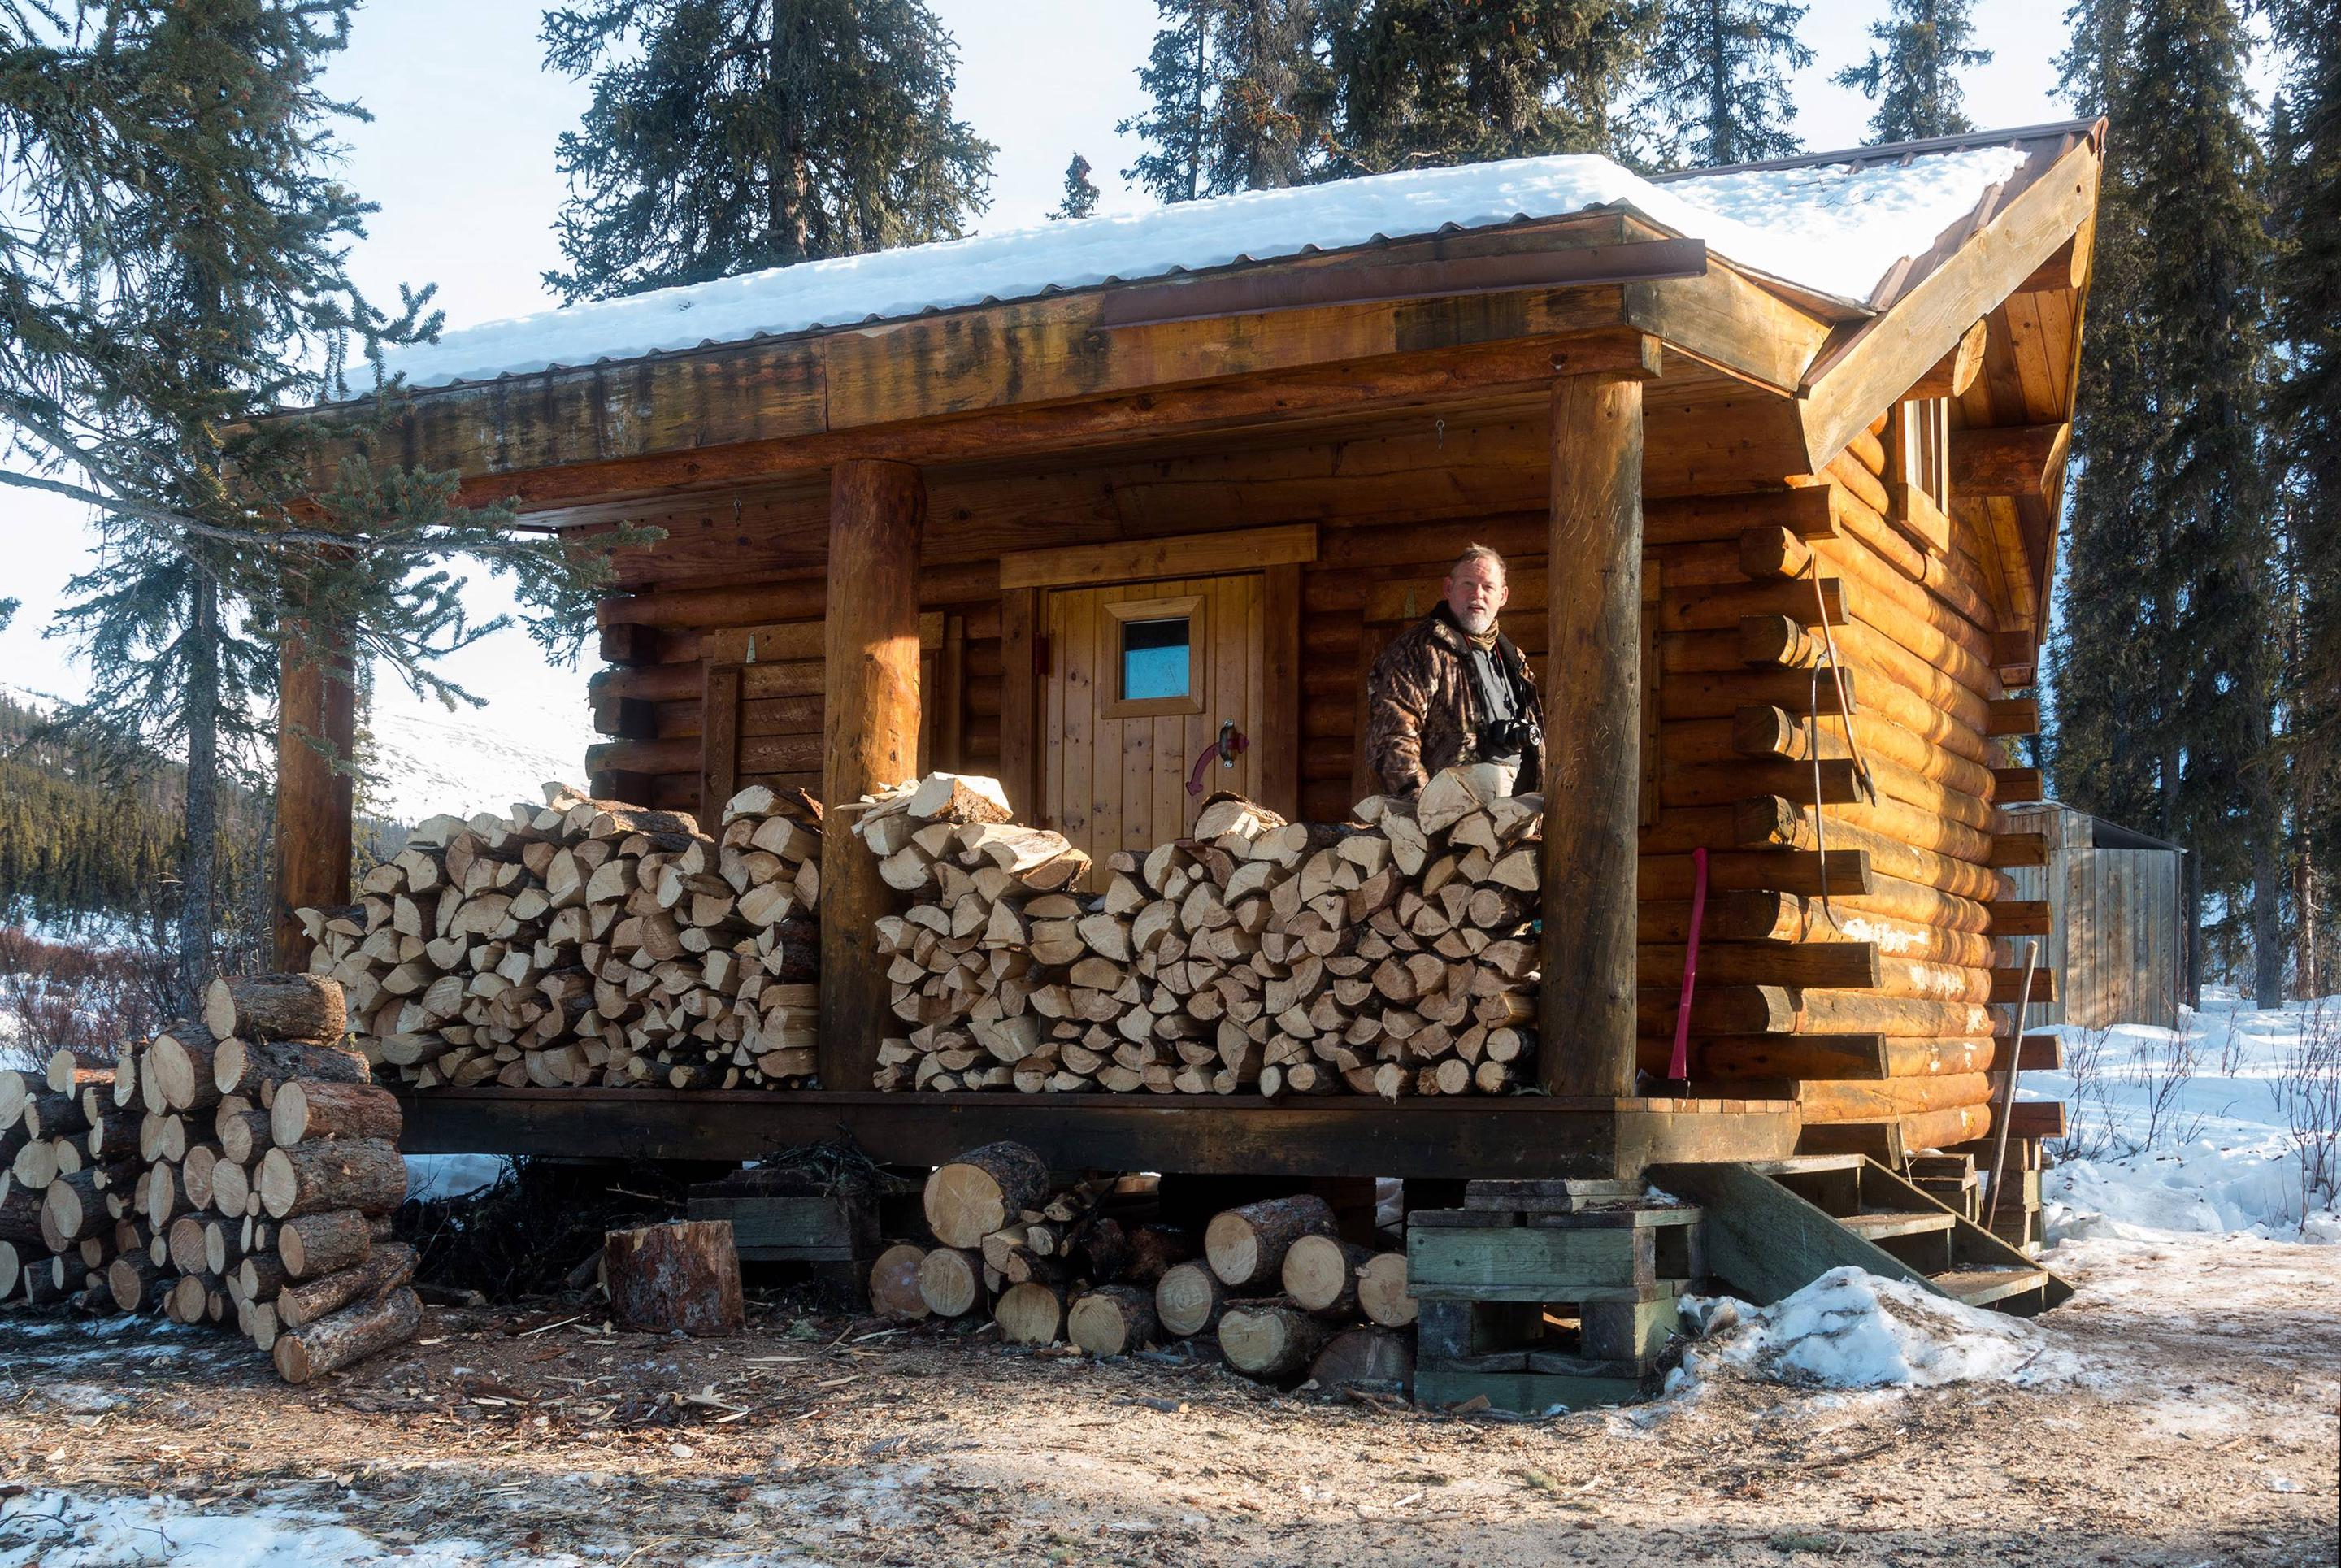 Log cabin with firewood piled on the front deckFront of Windy Gap Cabin piled high with firewood.